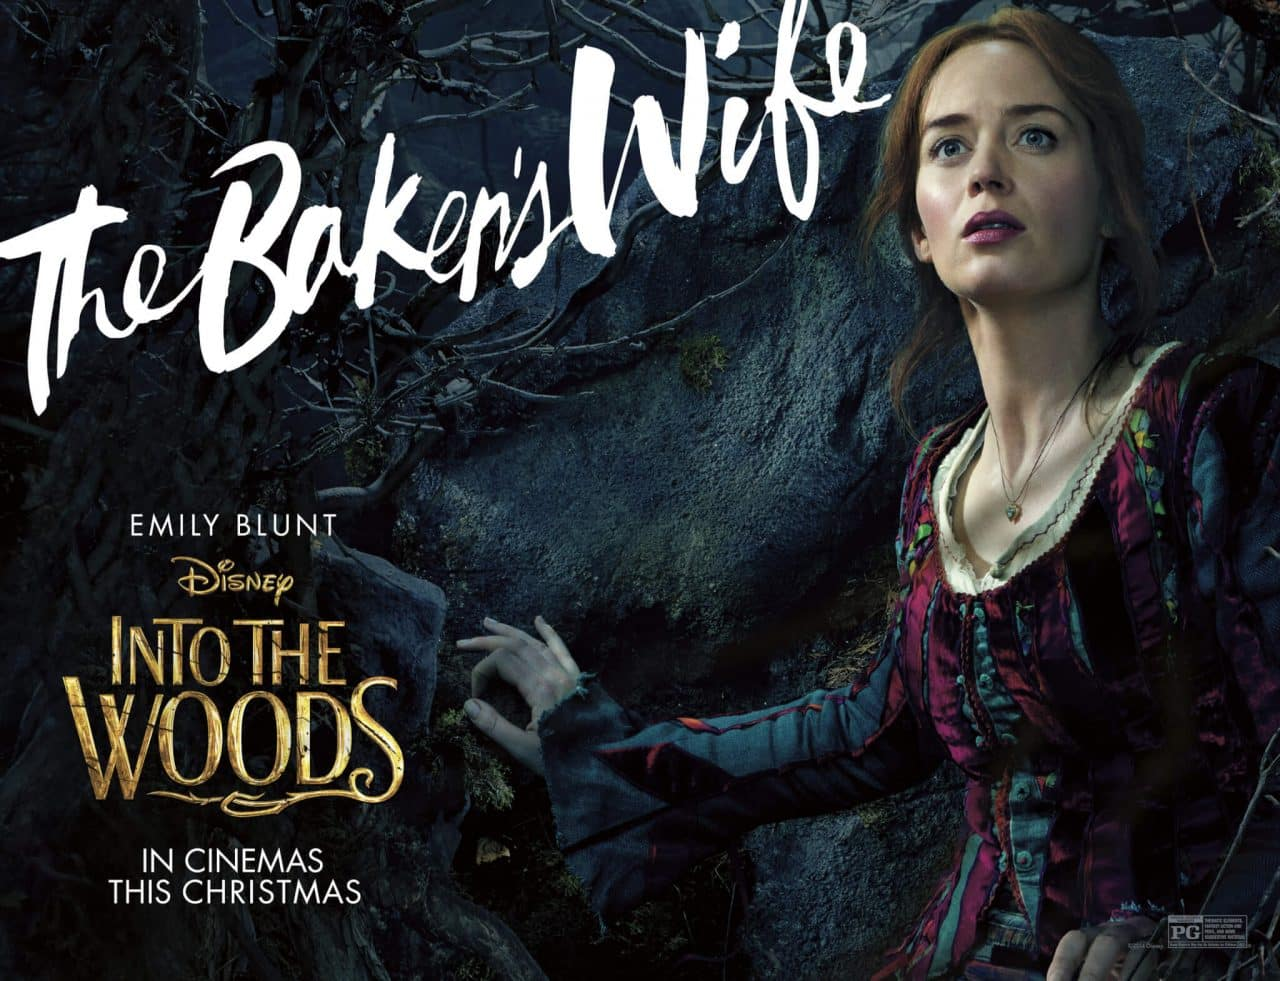 INTO THE WOODS - The Baker's Wife